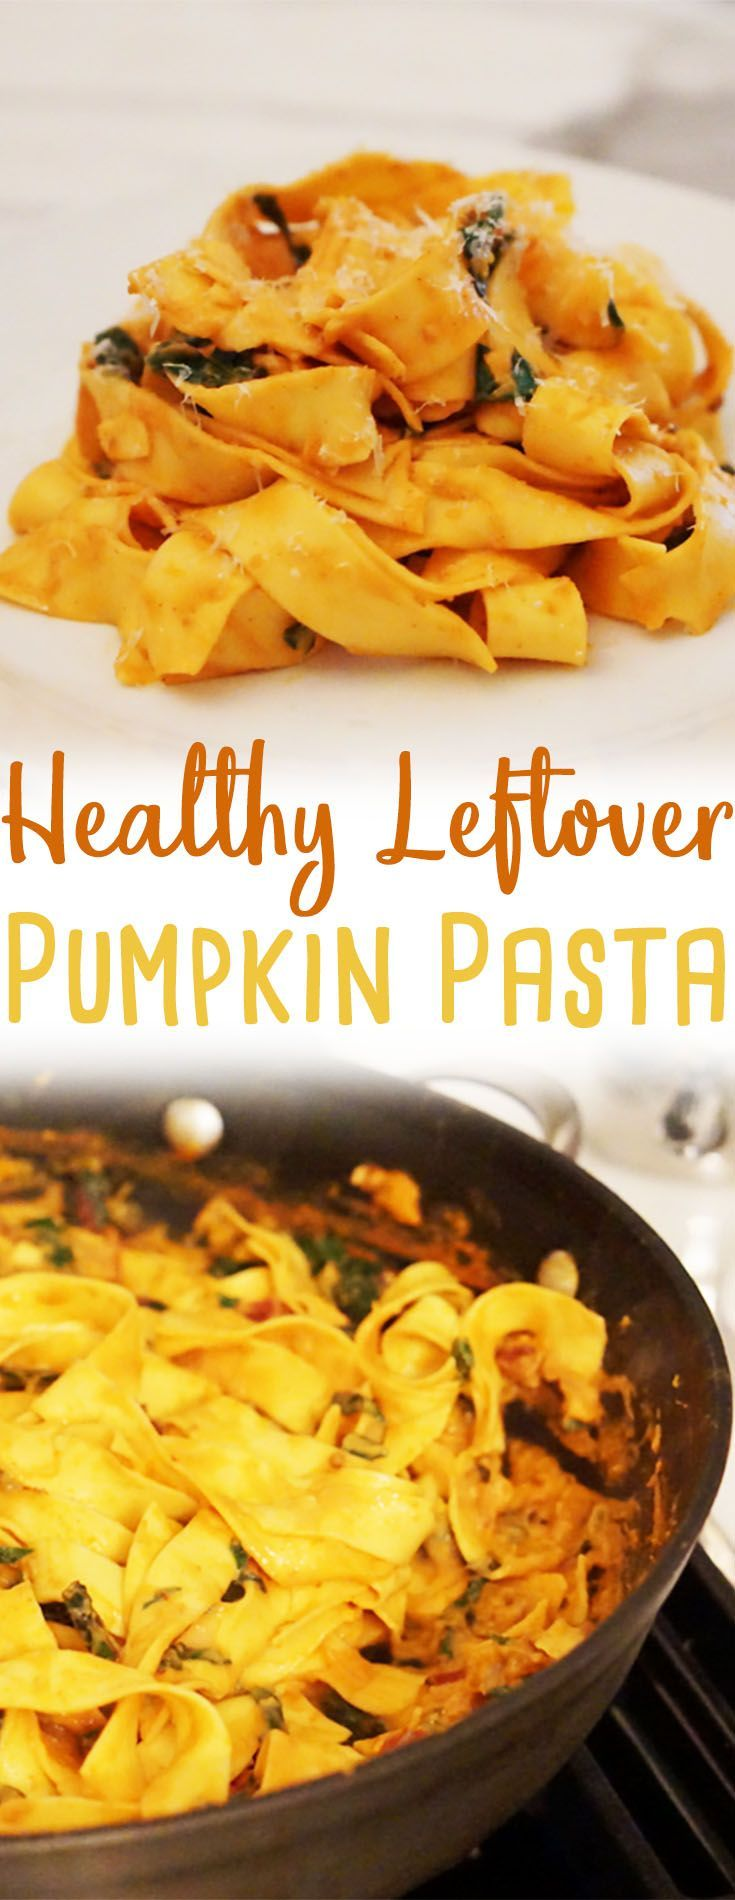 This healthy #pumpkin pasta with chipotle peppers is a great way to use up leftover canned pumpkin puree after the #holidays.